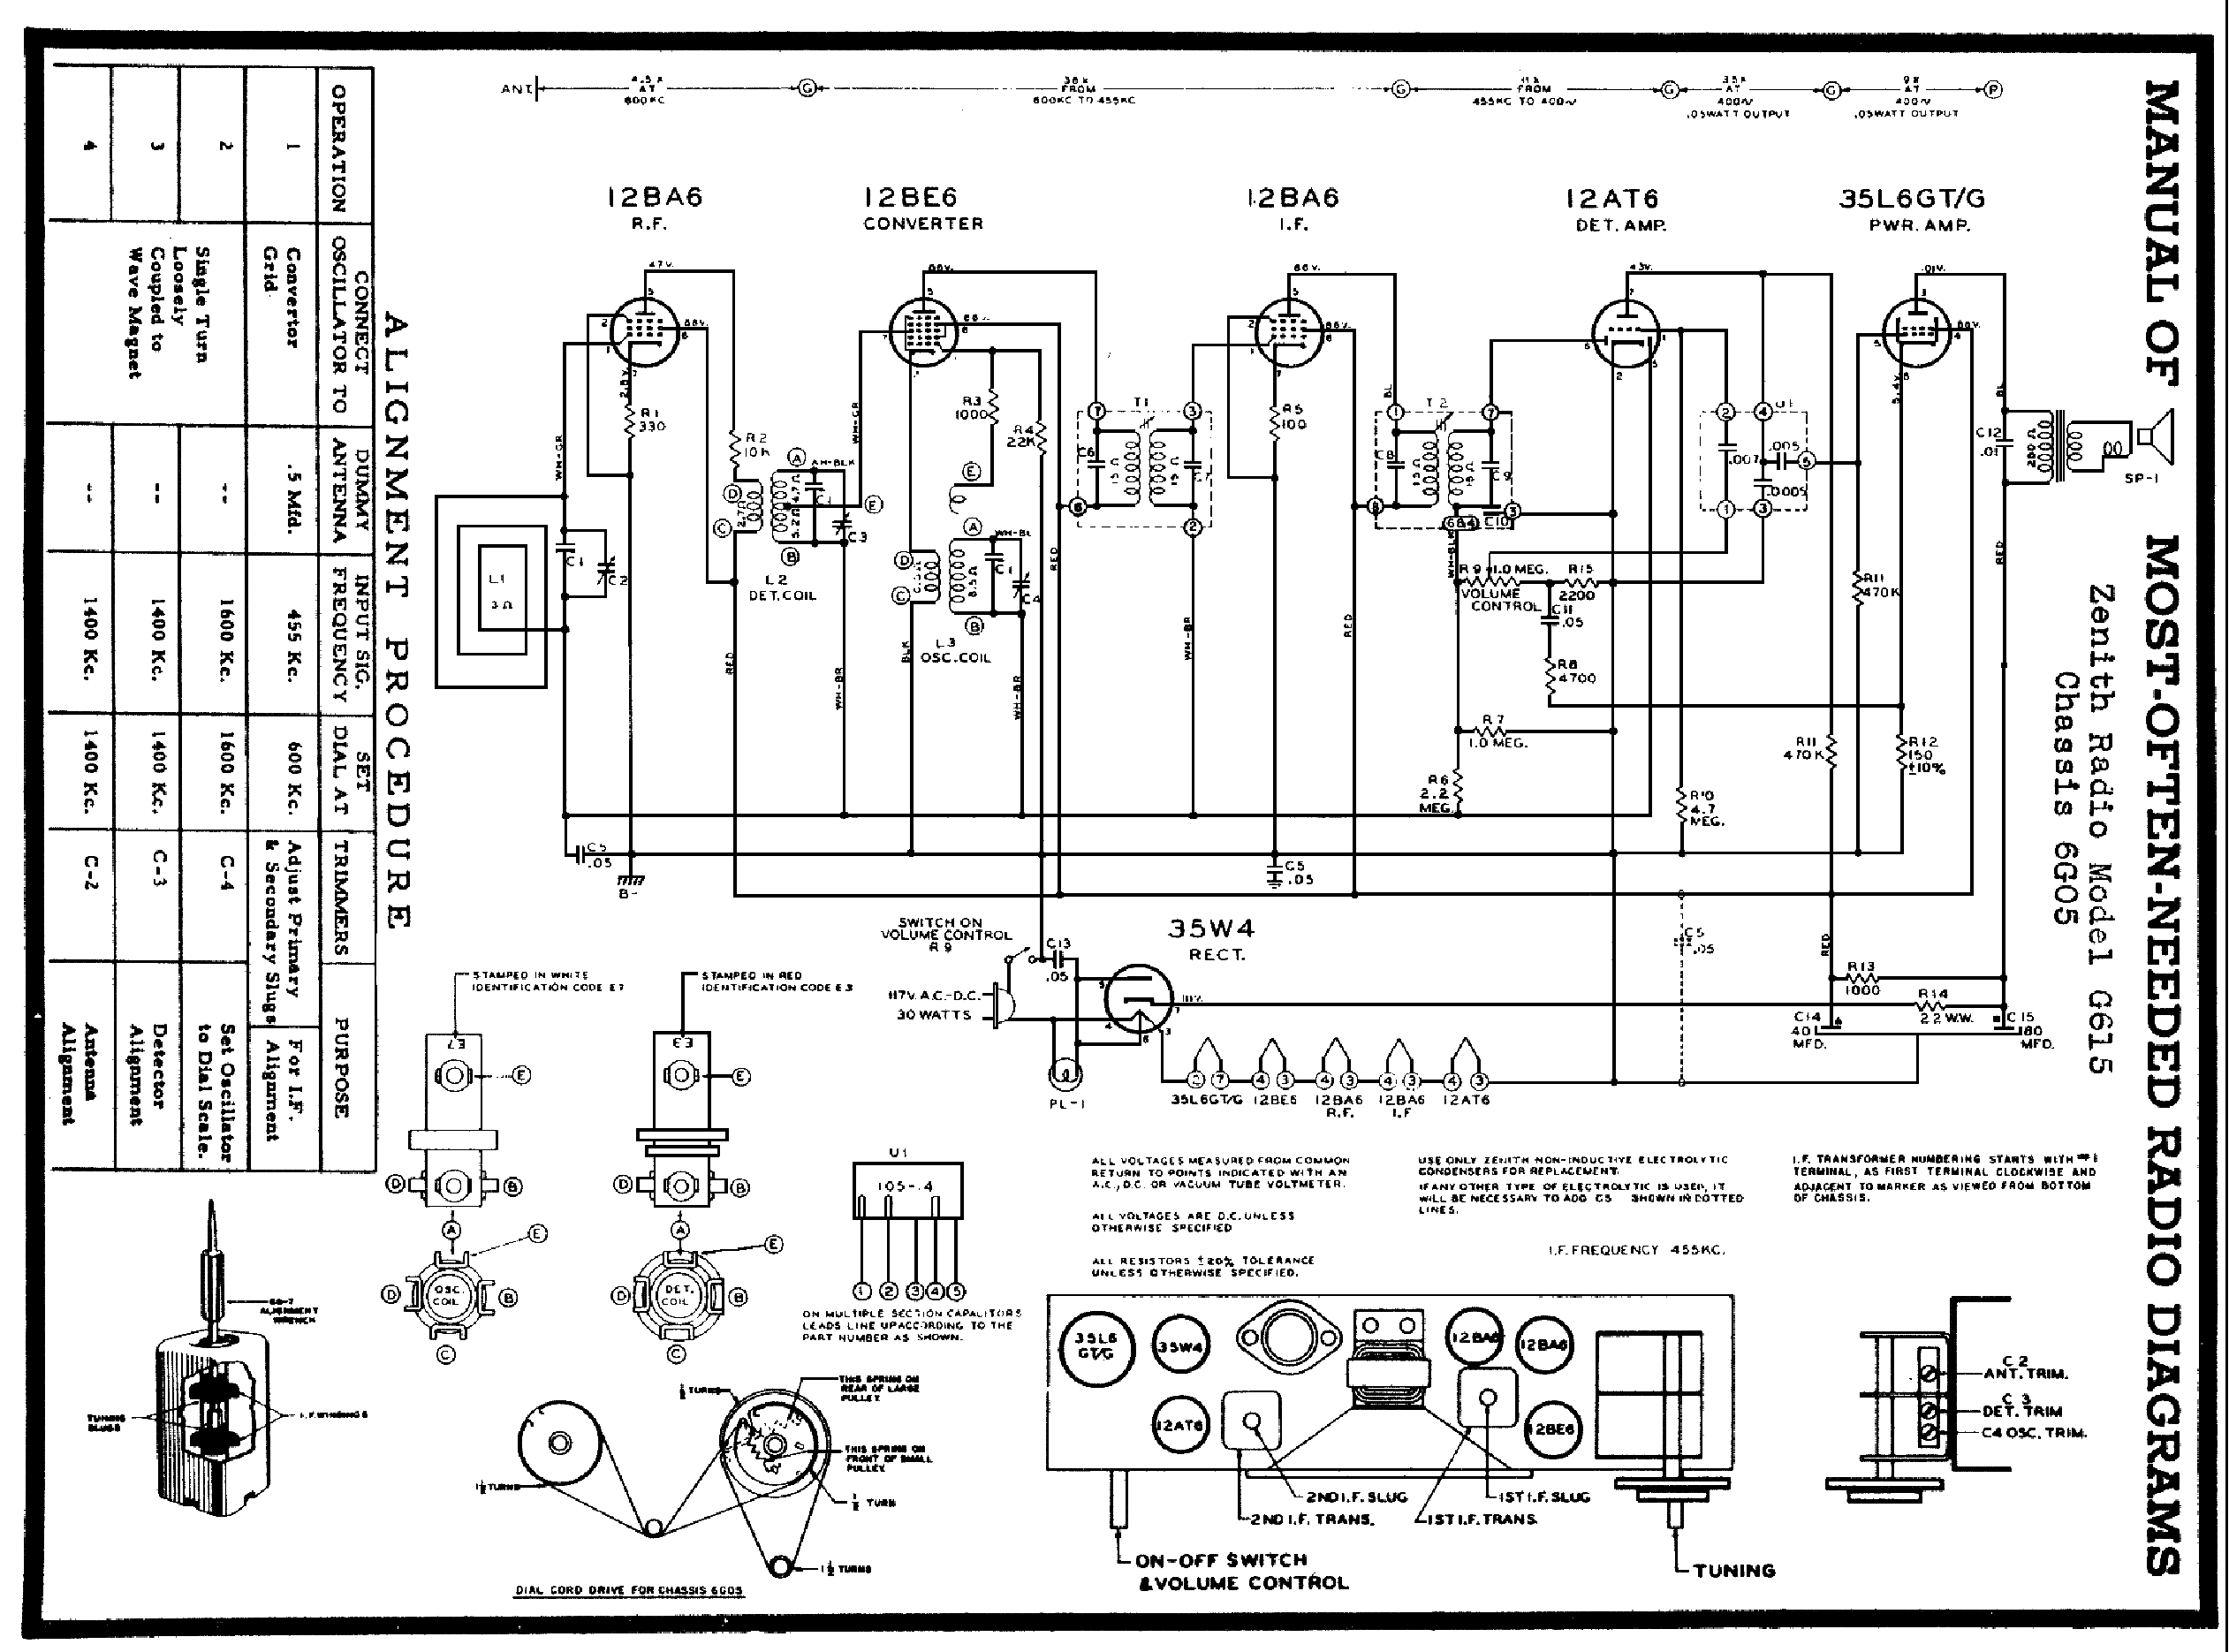 Nema 6 30r Wiring Diagram Within Diagram Wiring And Engine